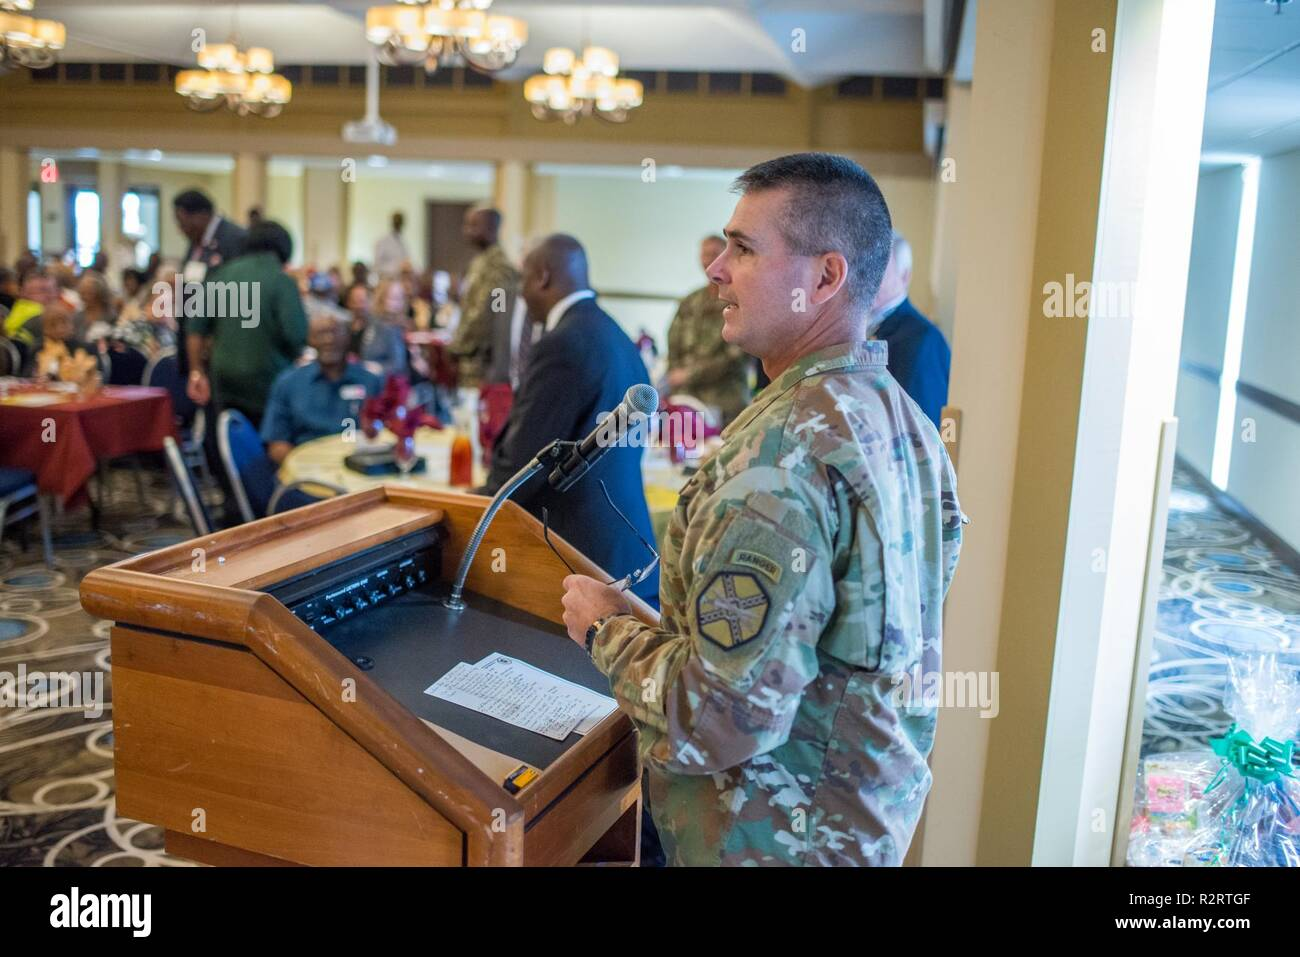 FORT BENNING, Ga. (Nov. 7, 2018) – Col. Clinton W. Cox, U.S. Army Garrison Fort Benning commander, talks to retirees about Fort Benning's training mission and its centennial celebration. Veterans of the U.S. military from Georgia and Alabama attended the annual Retiree Appreciation Day event Nov. 2 and the Benning Club at Fort Benning, Georgia. The event provides retirees and their Family members the information on policy updates, the opportunity to network with one another, the chance to renew ID cards, receive medical checkups, and more. - Stock Image